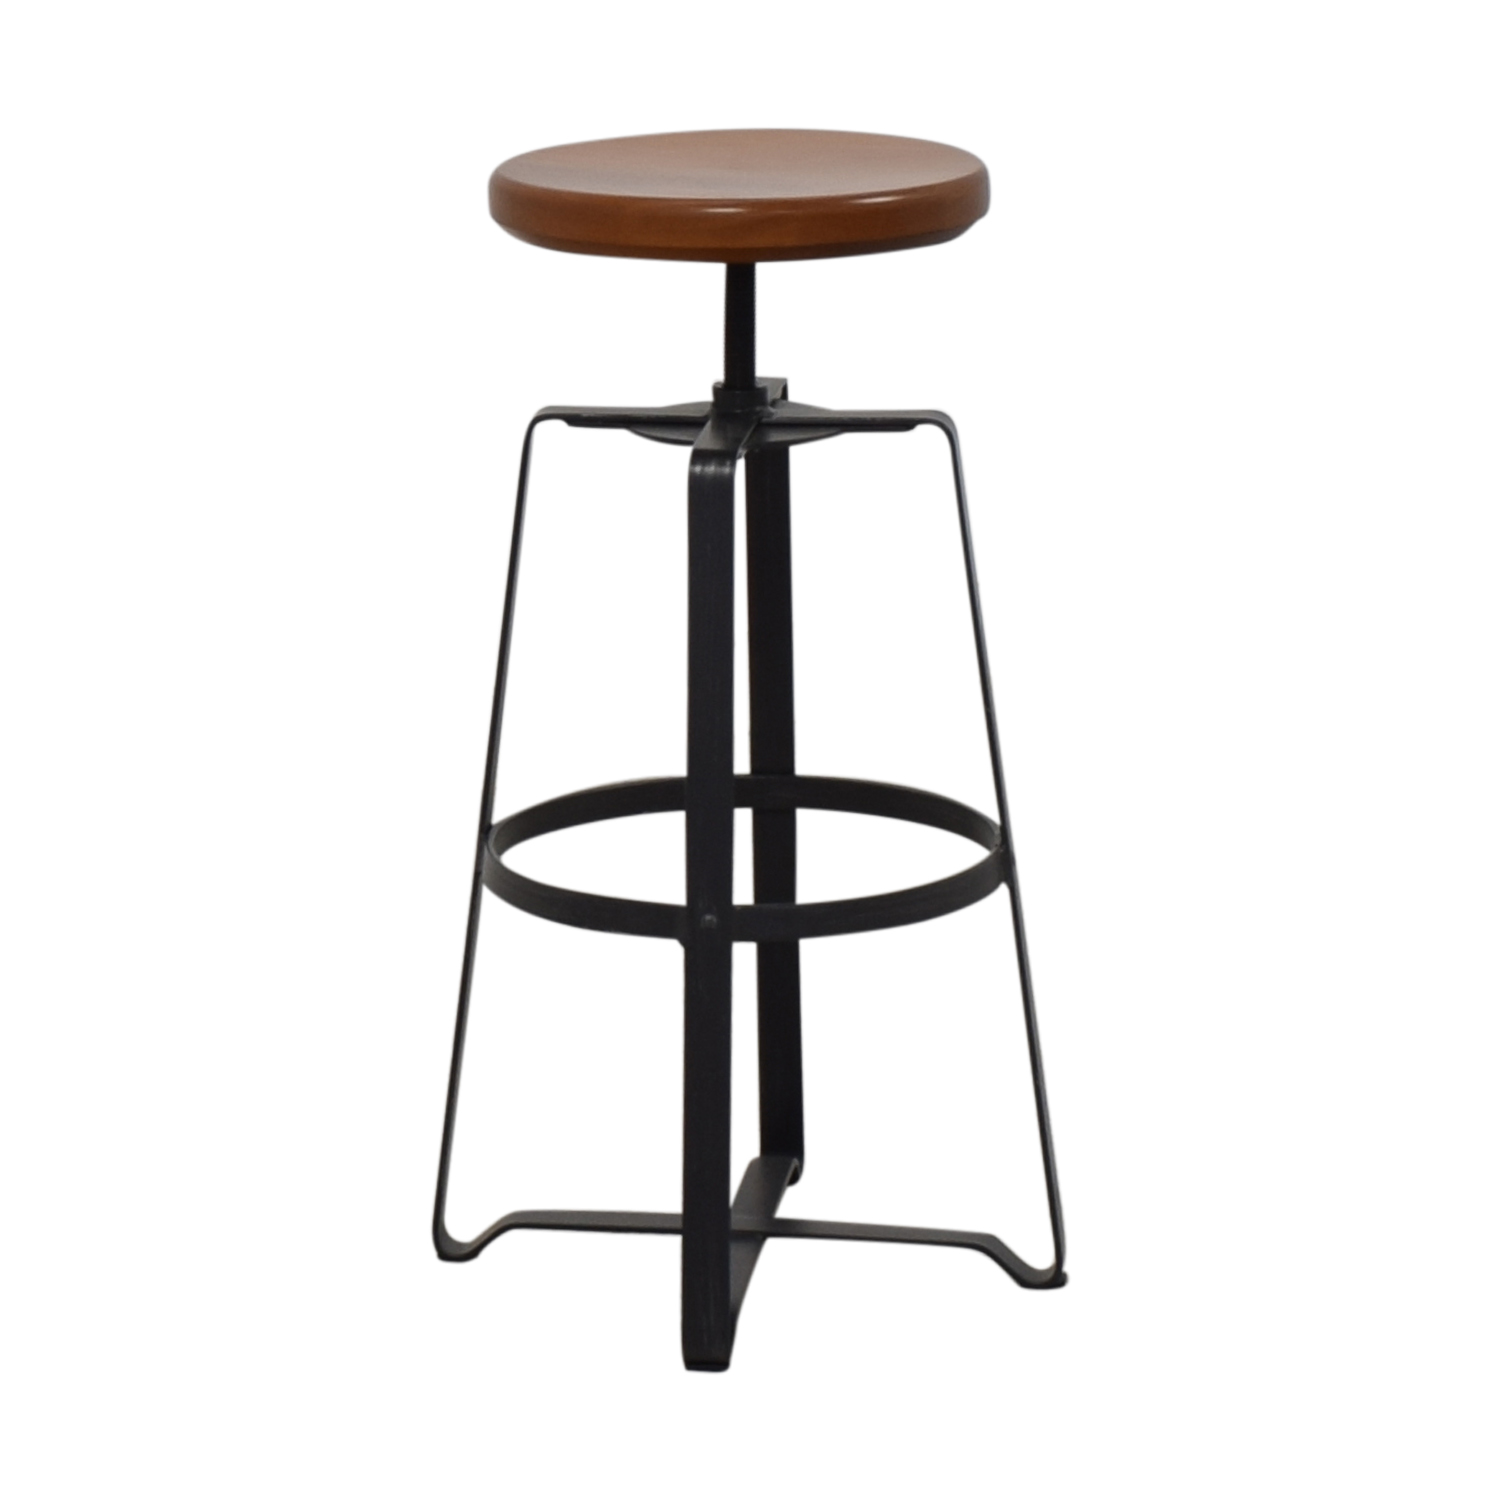 West Elm West Elm Adjustable Industrial Stool nj